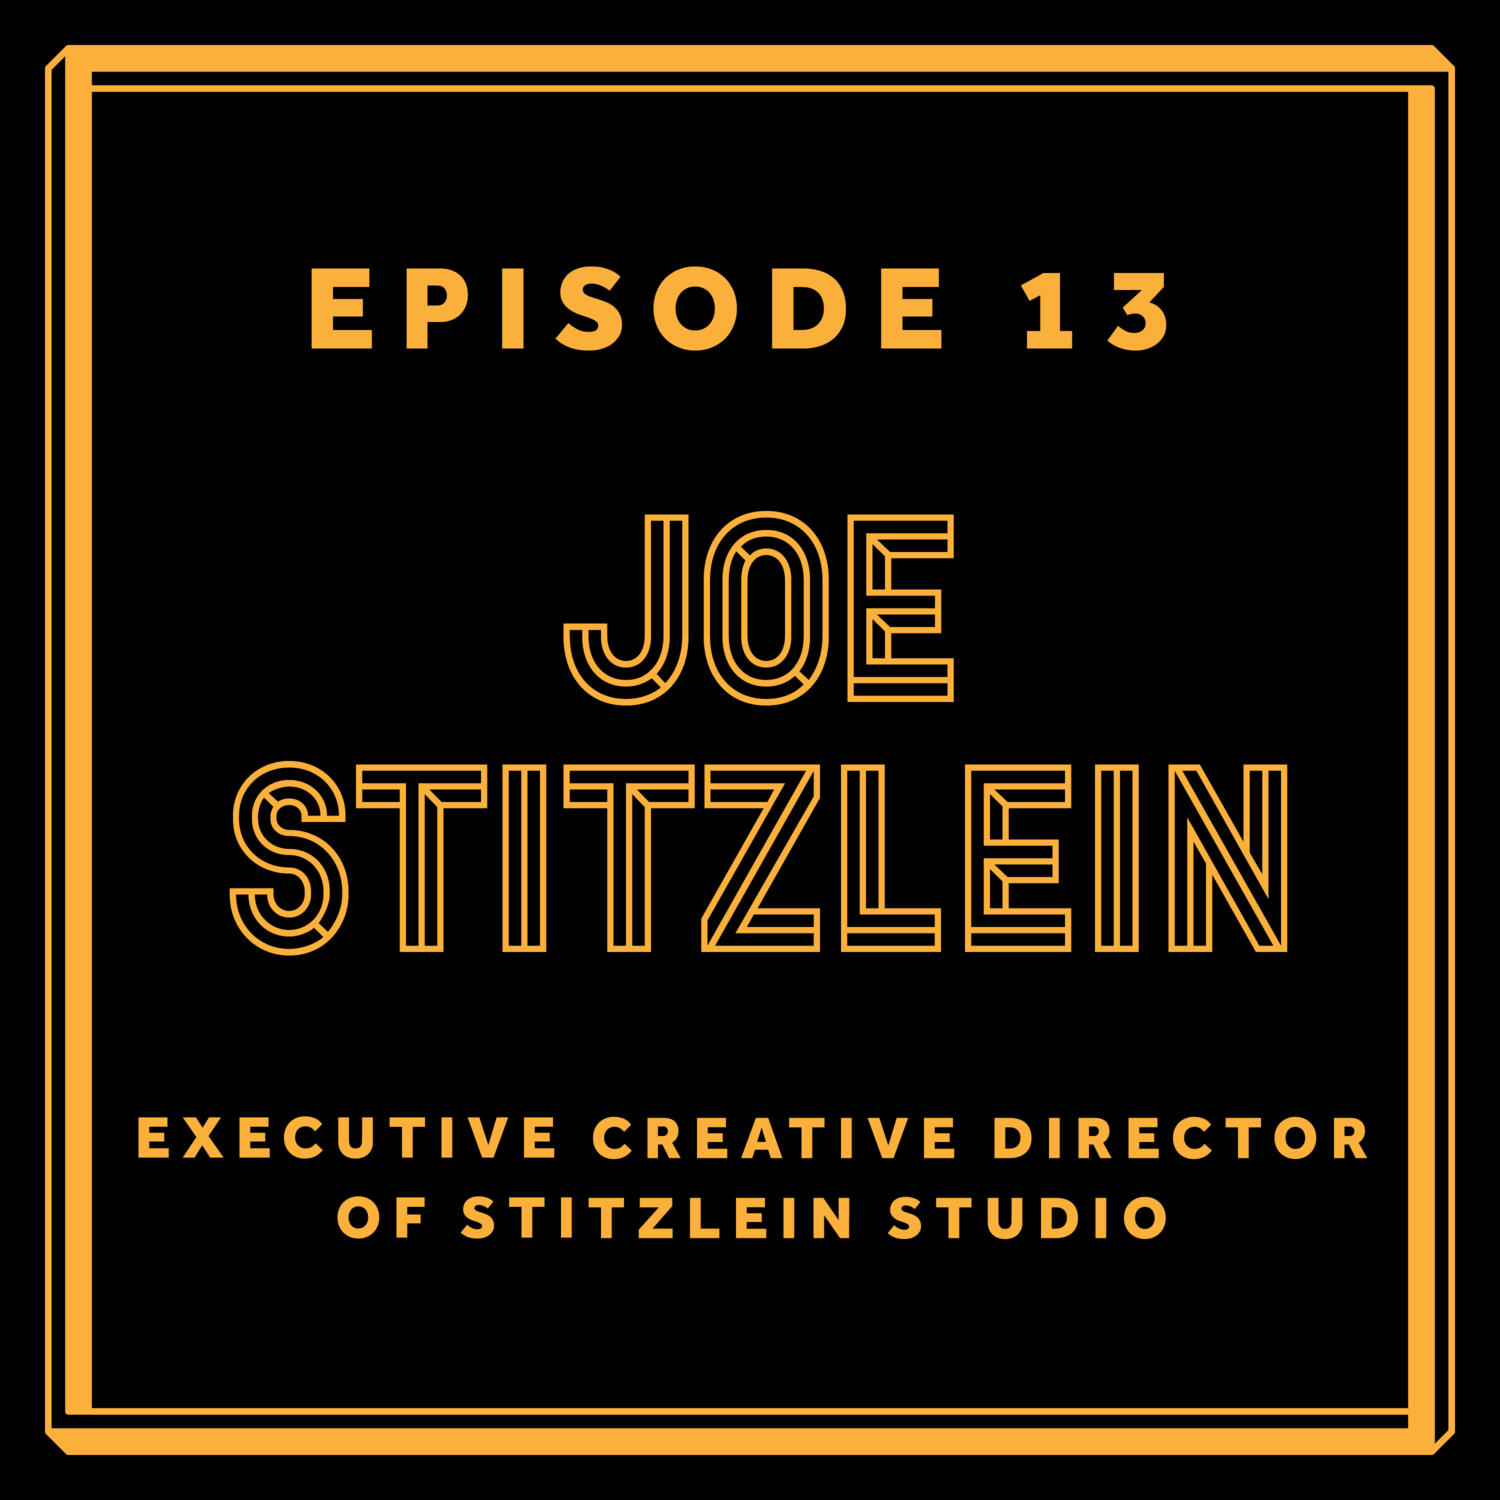 Episode 13: Joe Stitzlein - Executive Creative Director of Stitzlein Studio